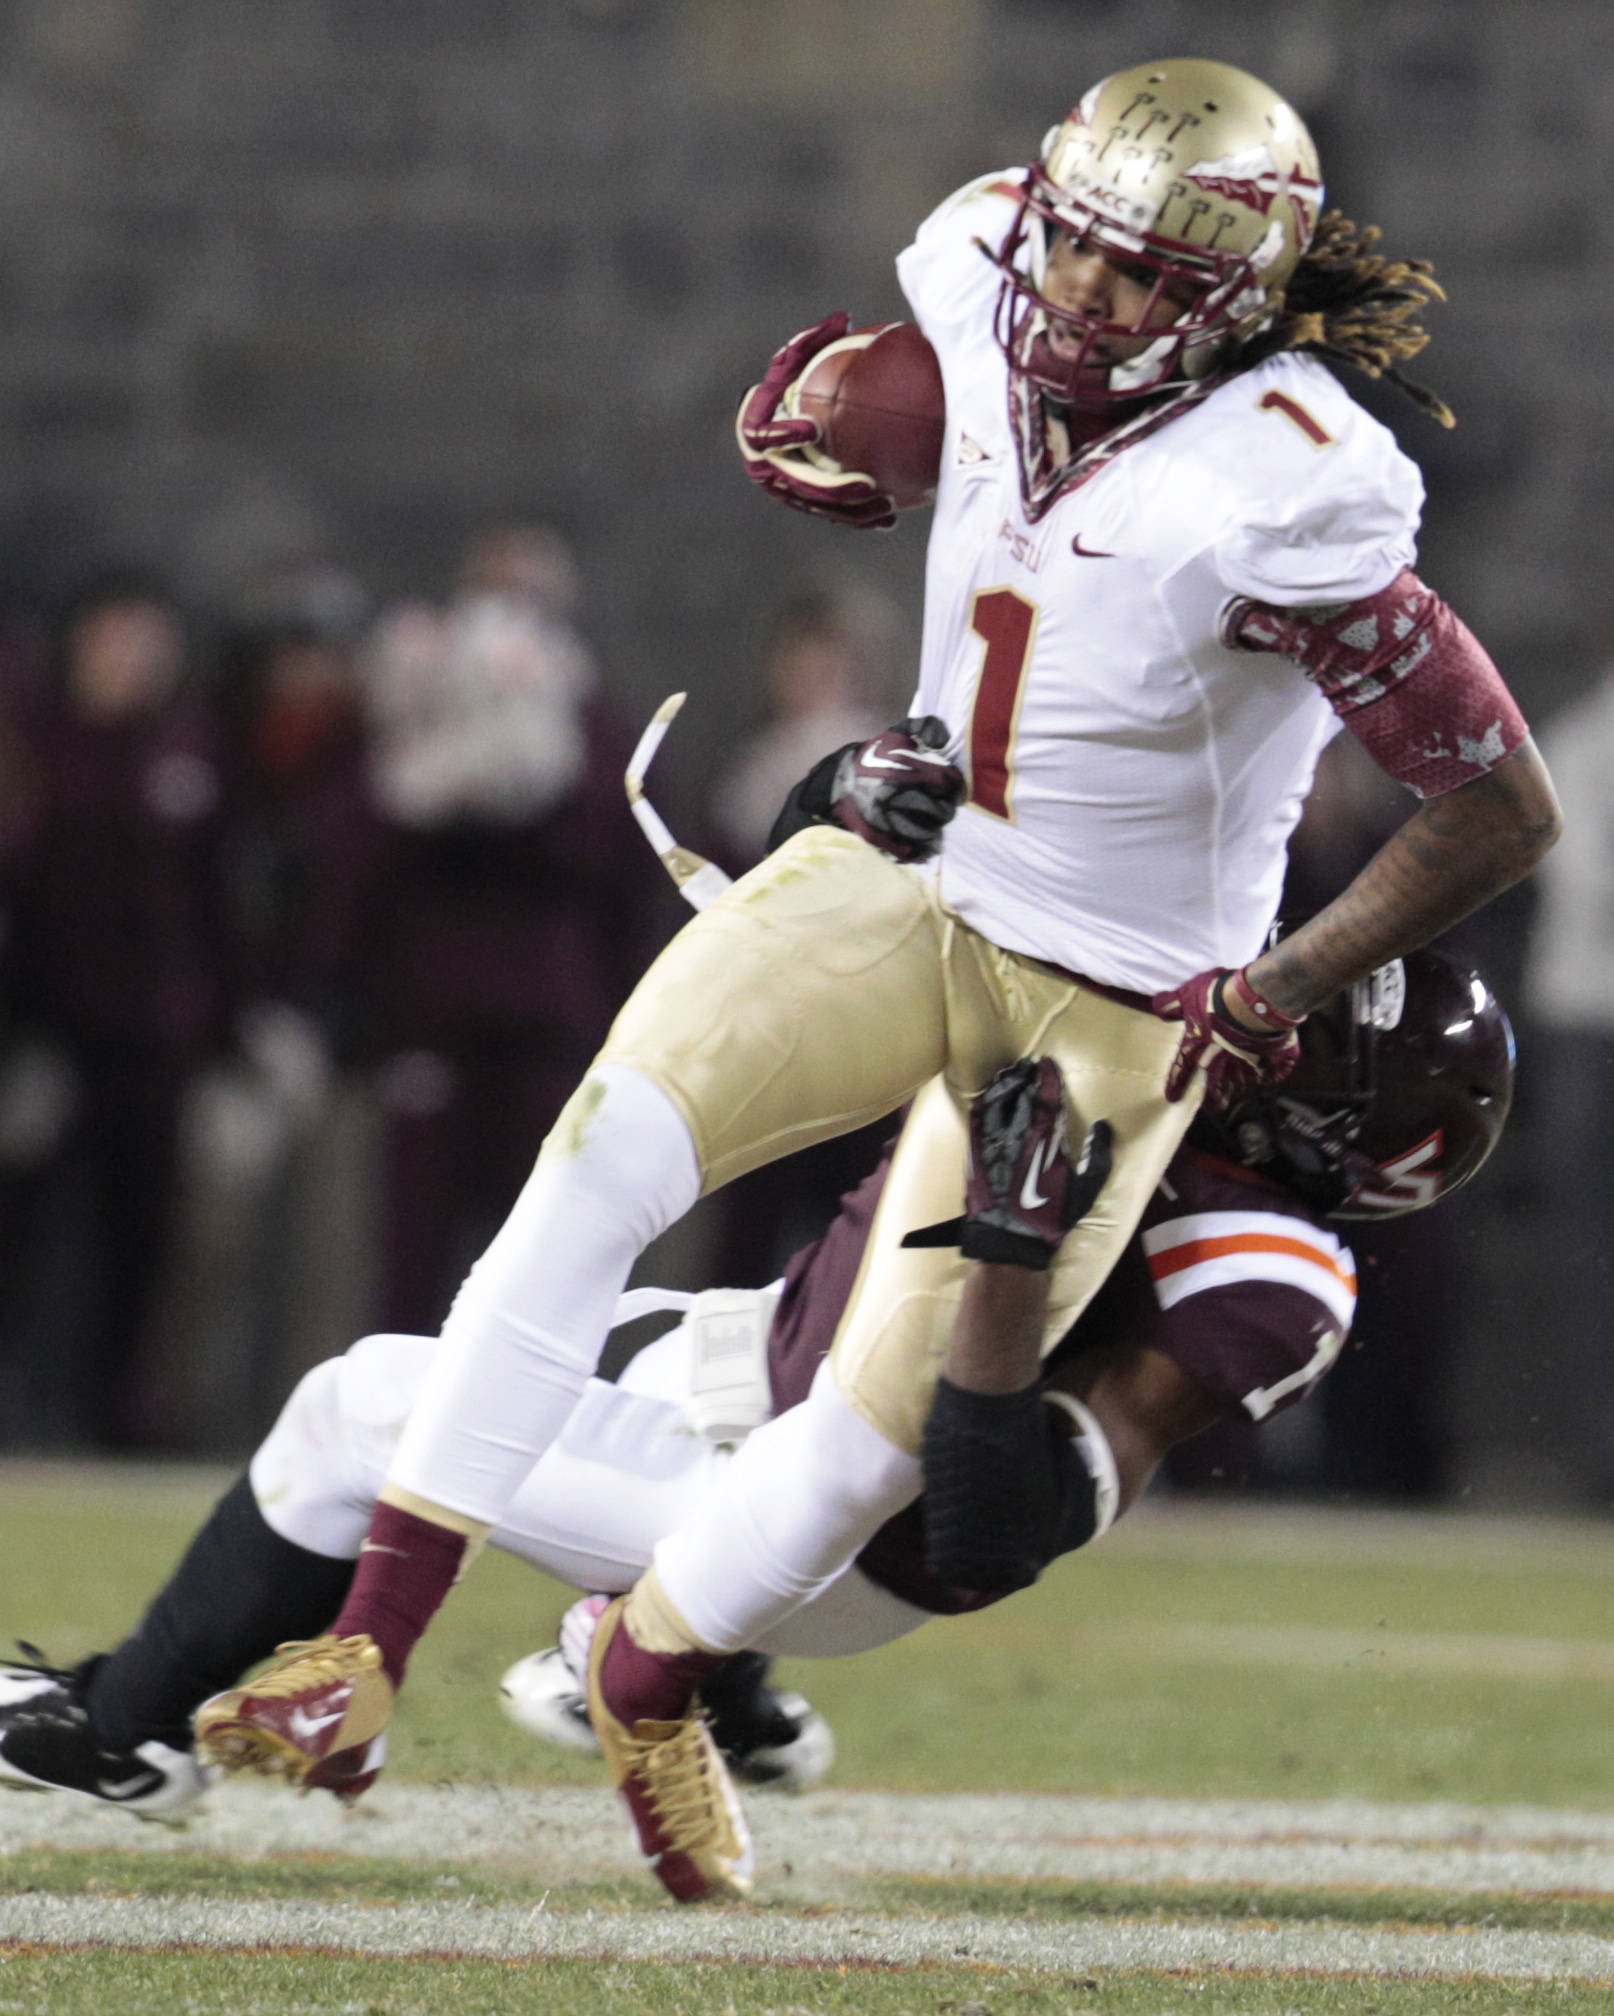 Florida State wide receiver Kelvin Benjamin (1) is brought down by Virginia Tech cornerback Antone Exum (1). (AP Photo/Steve Helber)